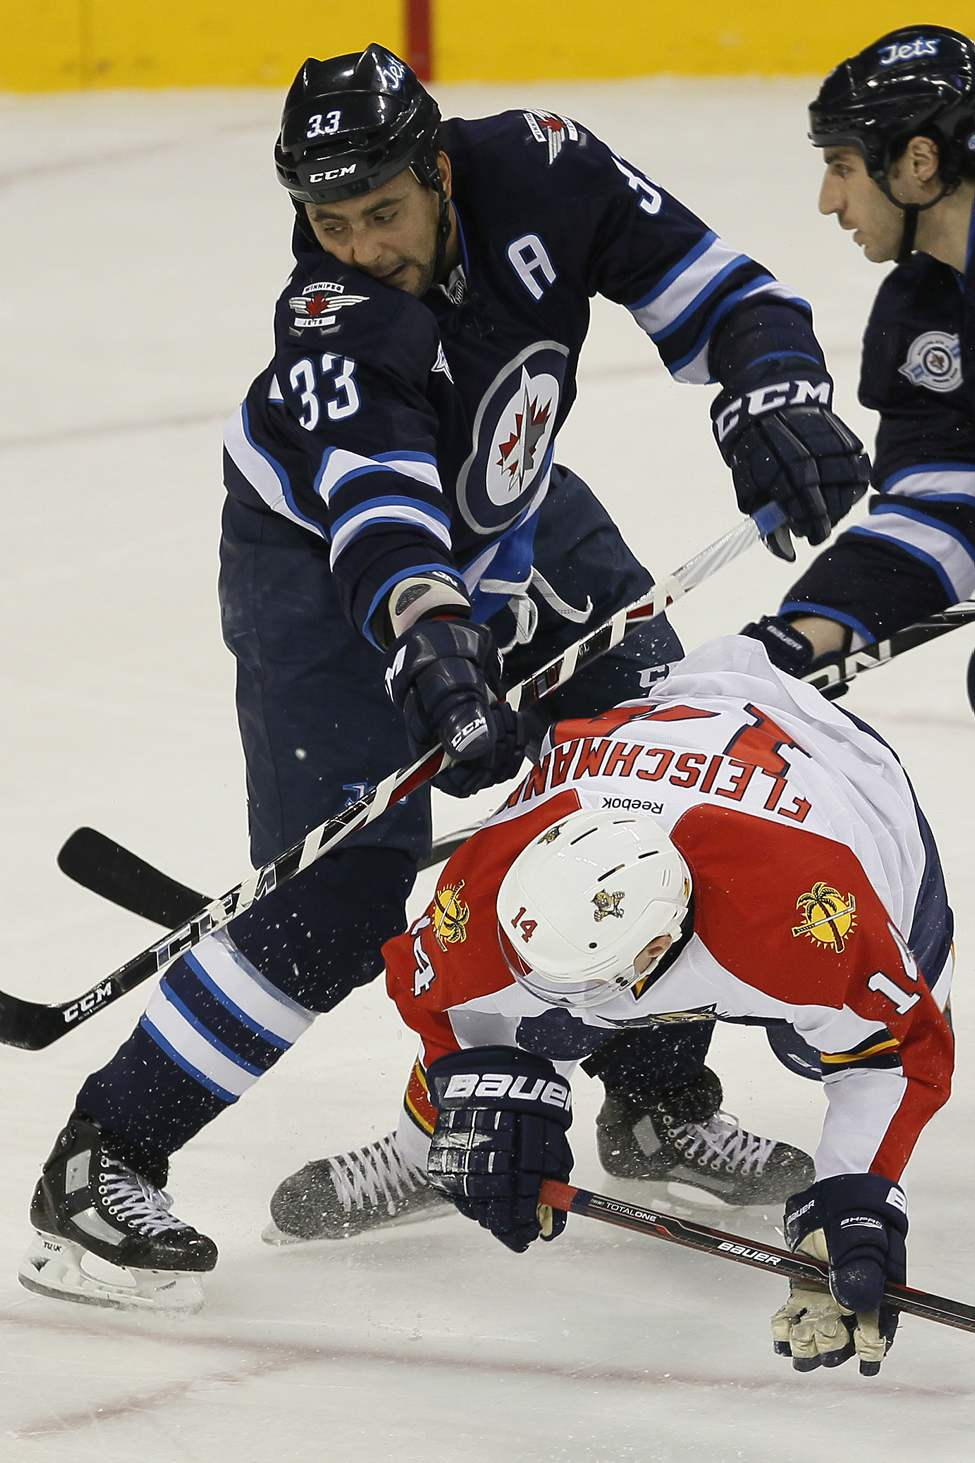 Winnipeg Jets defenceman Dustin Byfuglien (33) checks Florida Panthers forward Tomas Fleischmann (14) during first period NHL action in Winnipeg on November 10, 2011. (John Woods / WINNIPEG FREE PRESS)